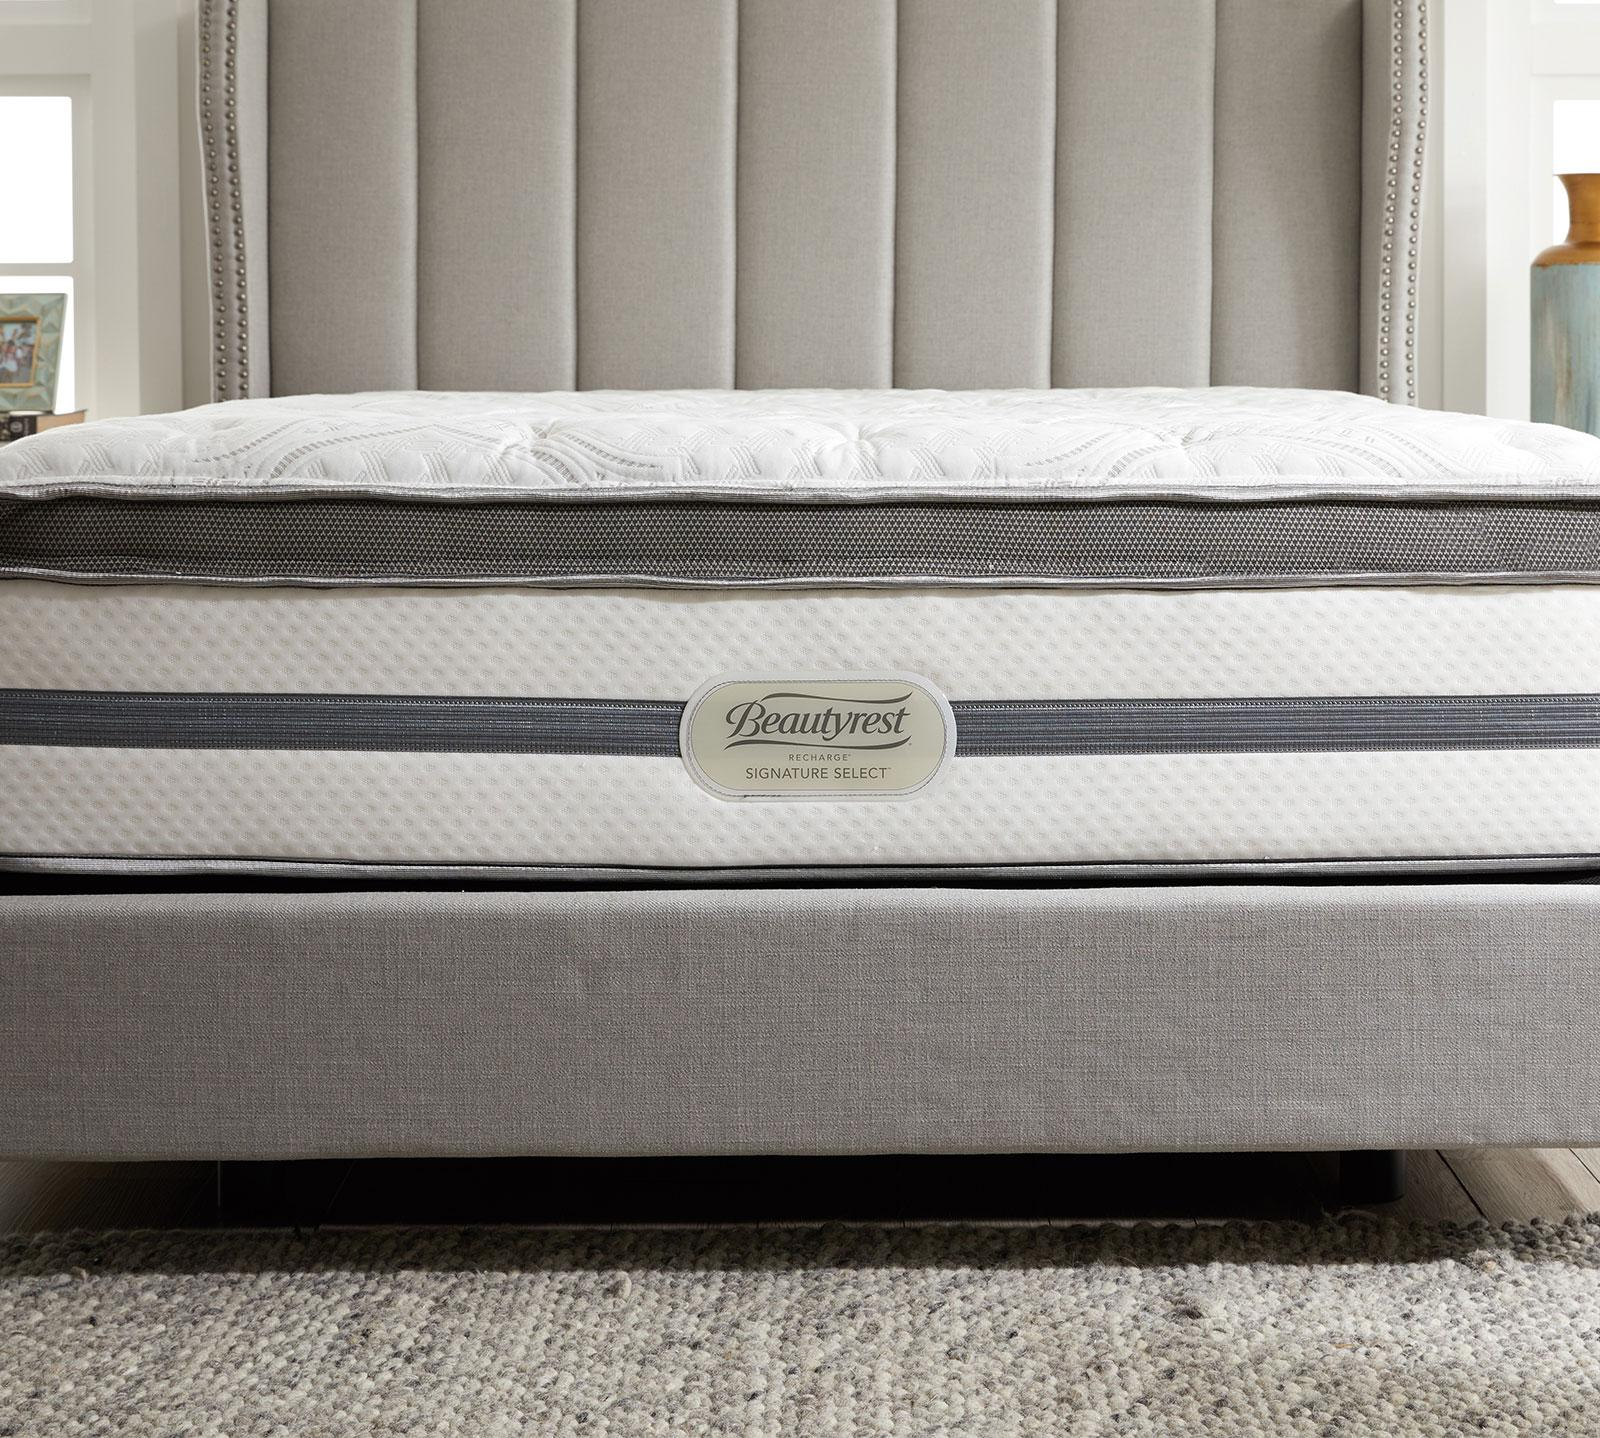 beautyrest mattress pillow top. Fine Pillow Next Throughout Beautyrest Mattress Pillow Top Firm